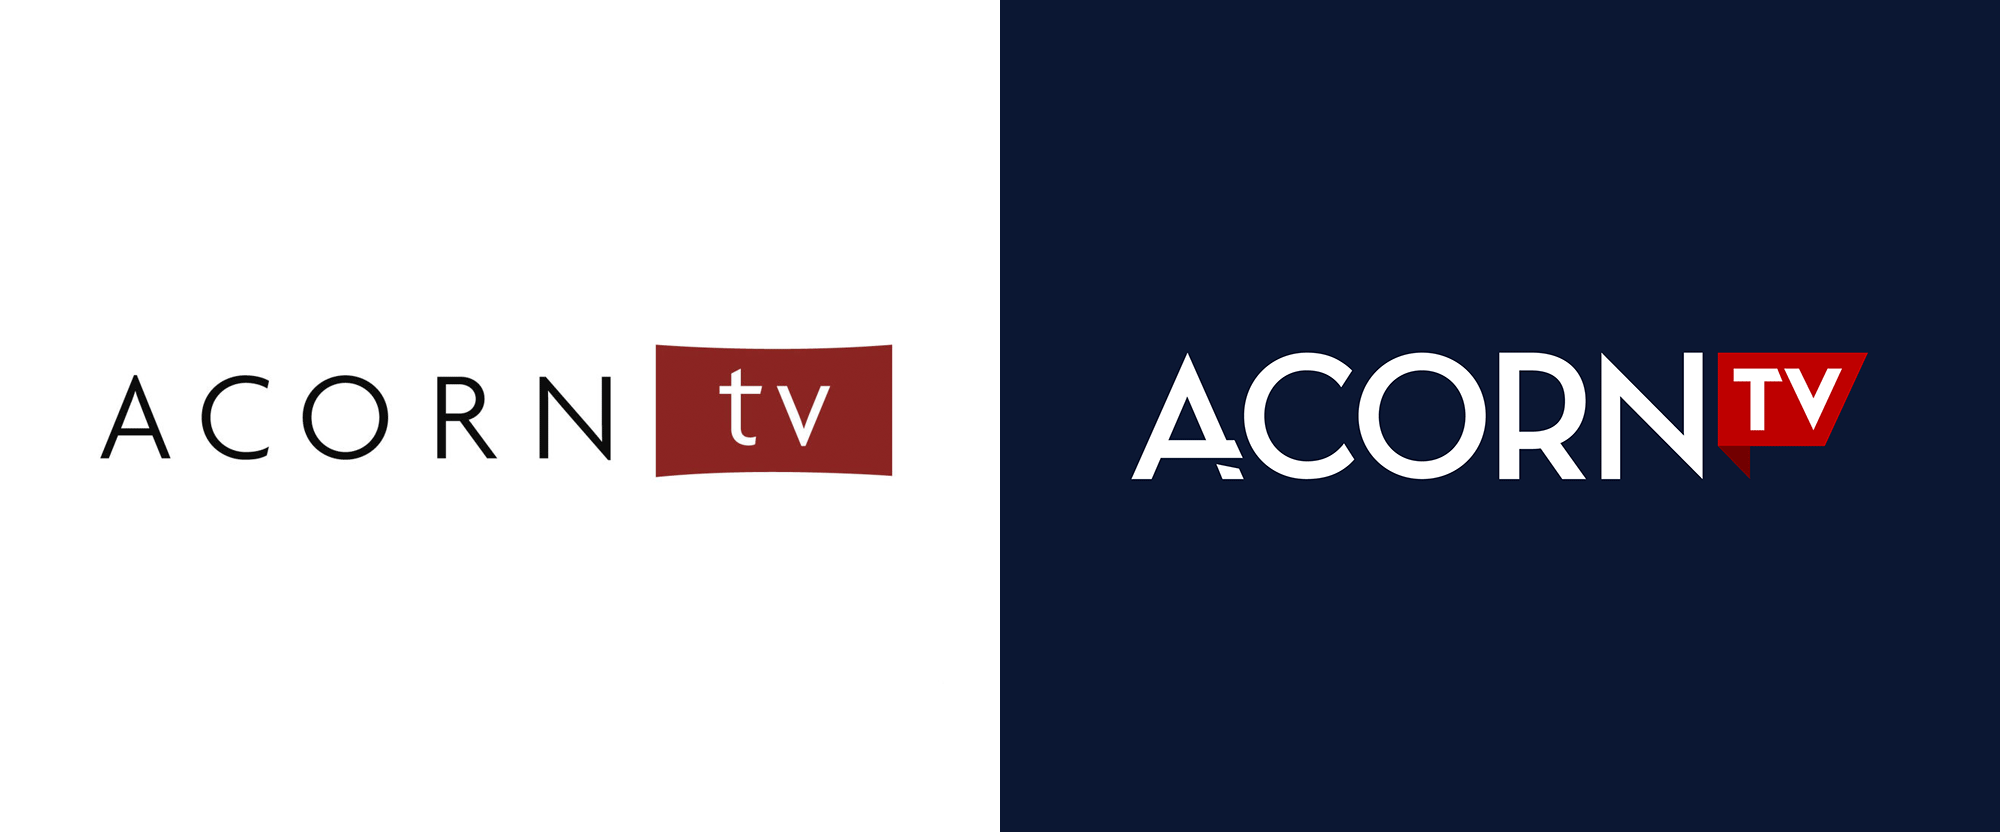 New Logo for Acorn TV by Trollbäck+Company